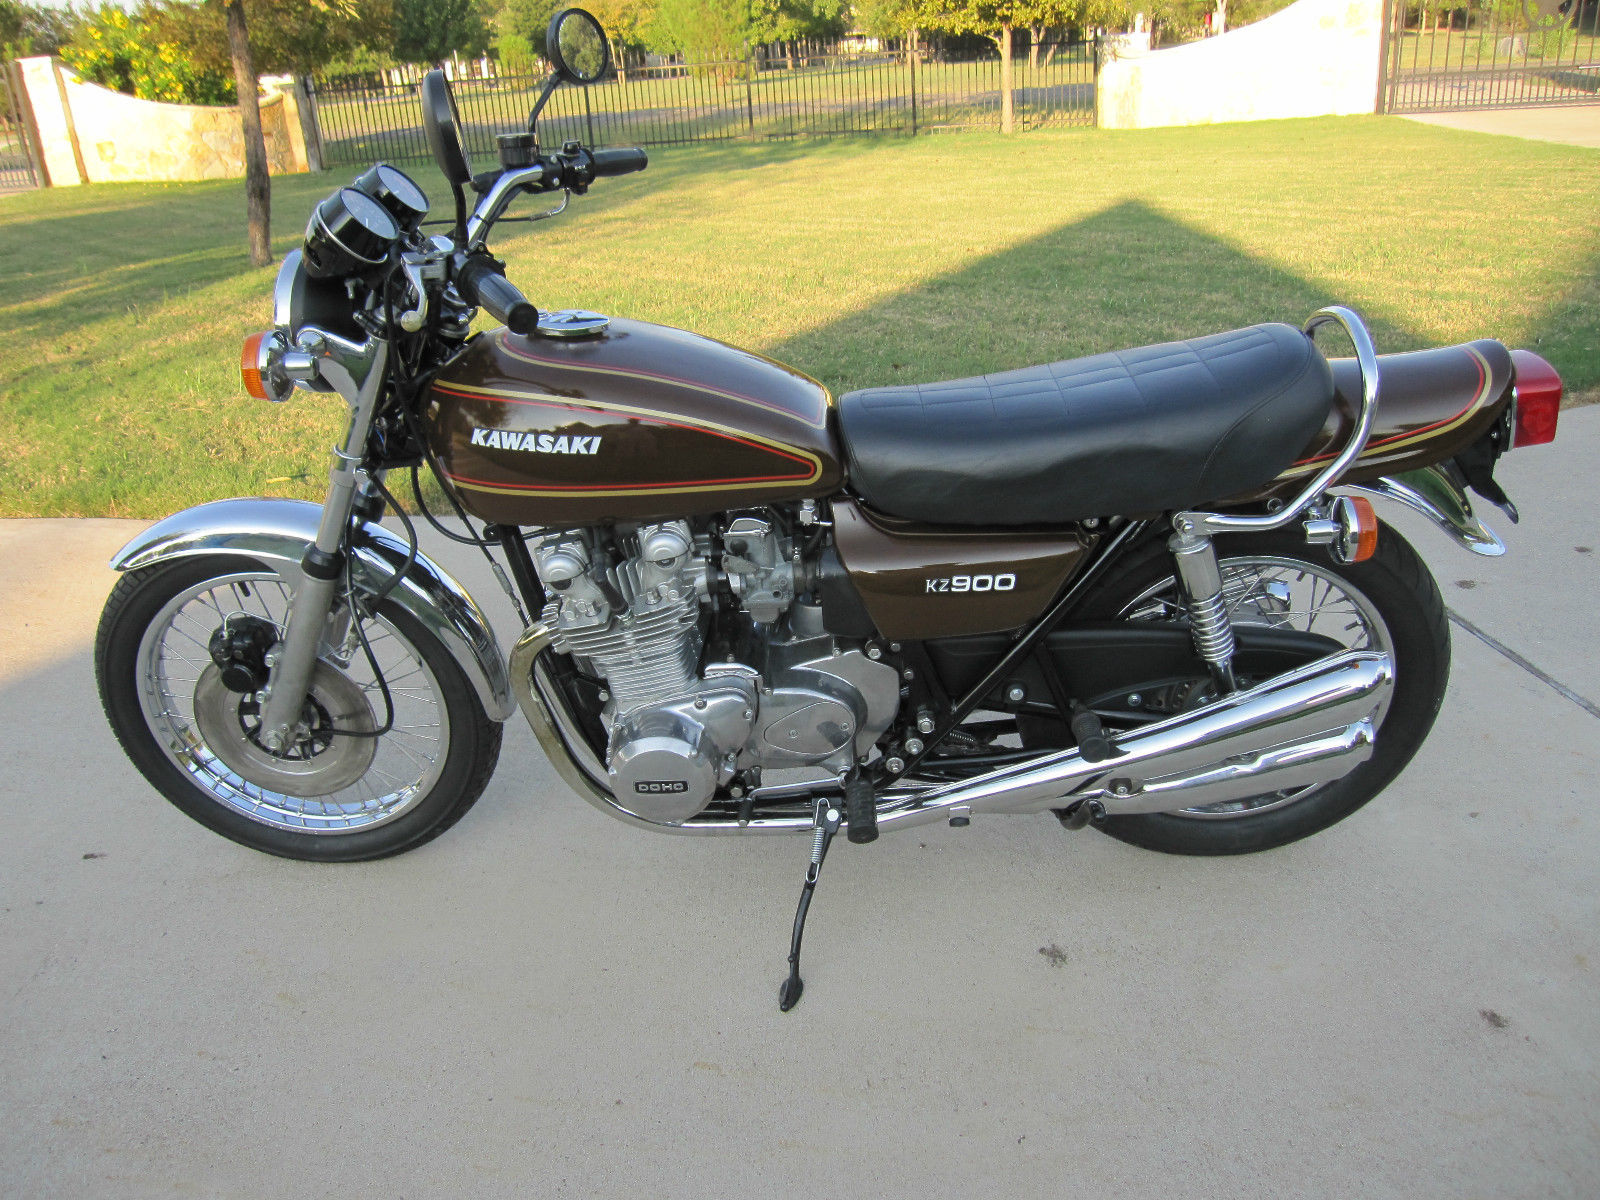 Kawasaki KZ900 - 1976 - Left Side View, Saddle, Petrol Tank, Engine and Gearbox, Exhaust and Wheels.